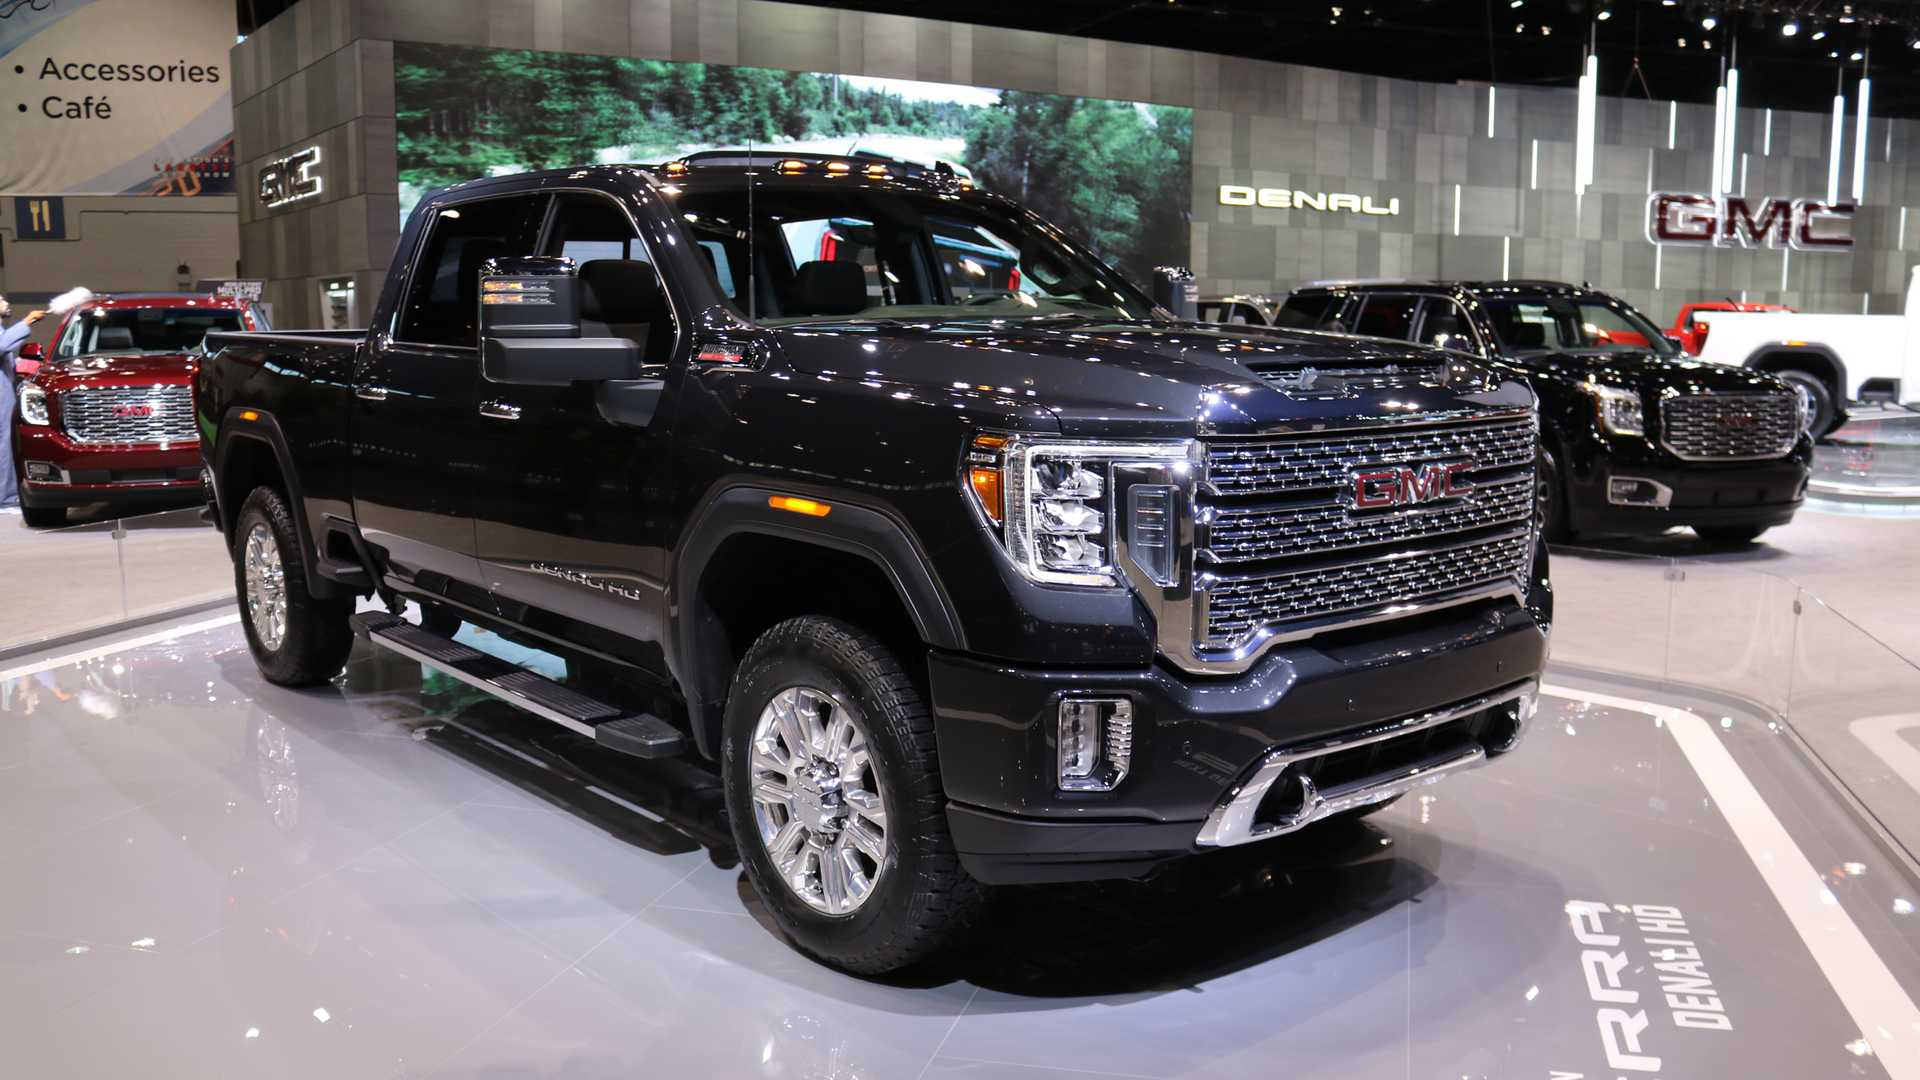 77 The Best 2020 Gmc Hd Pickup Redesign And Concept